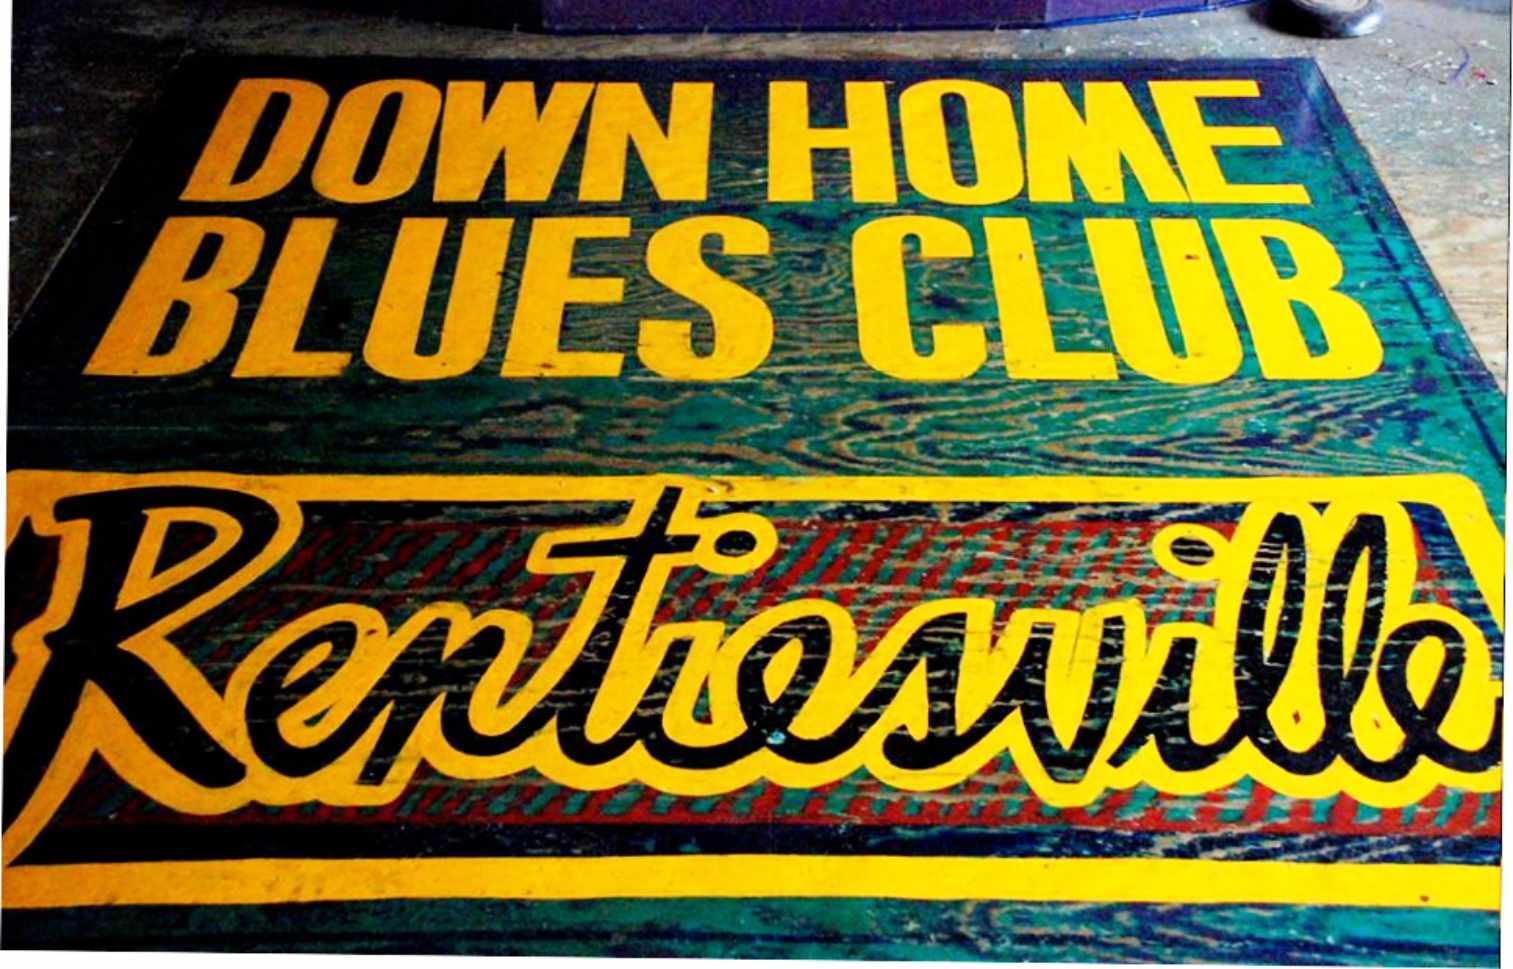 Down Home Blues Club in Rentiesville, OK